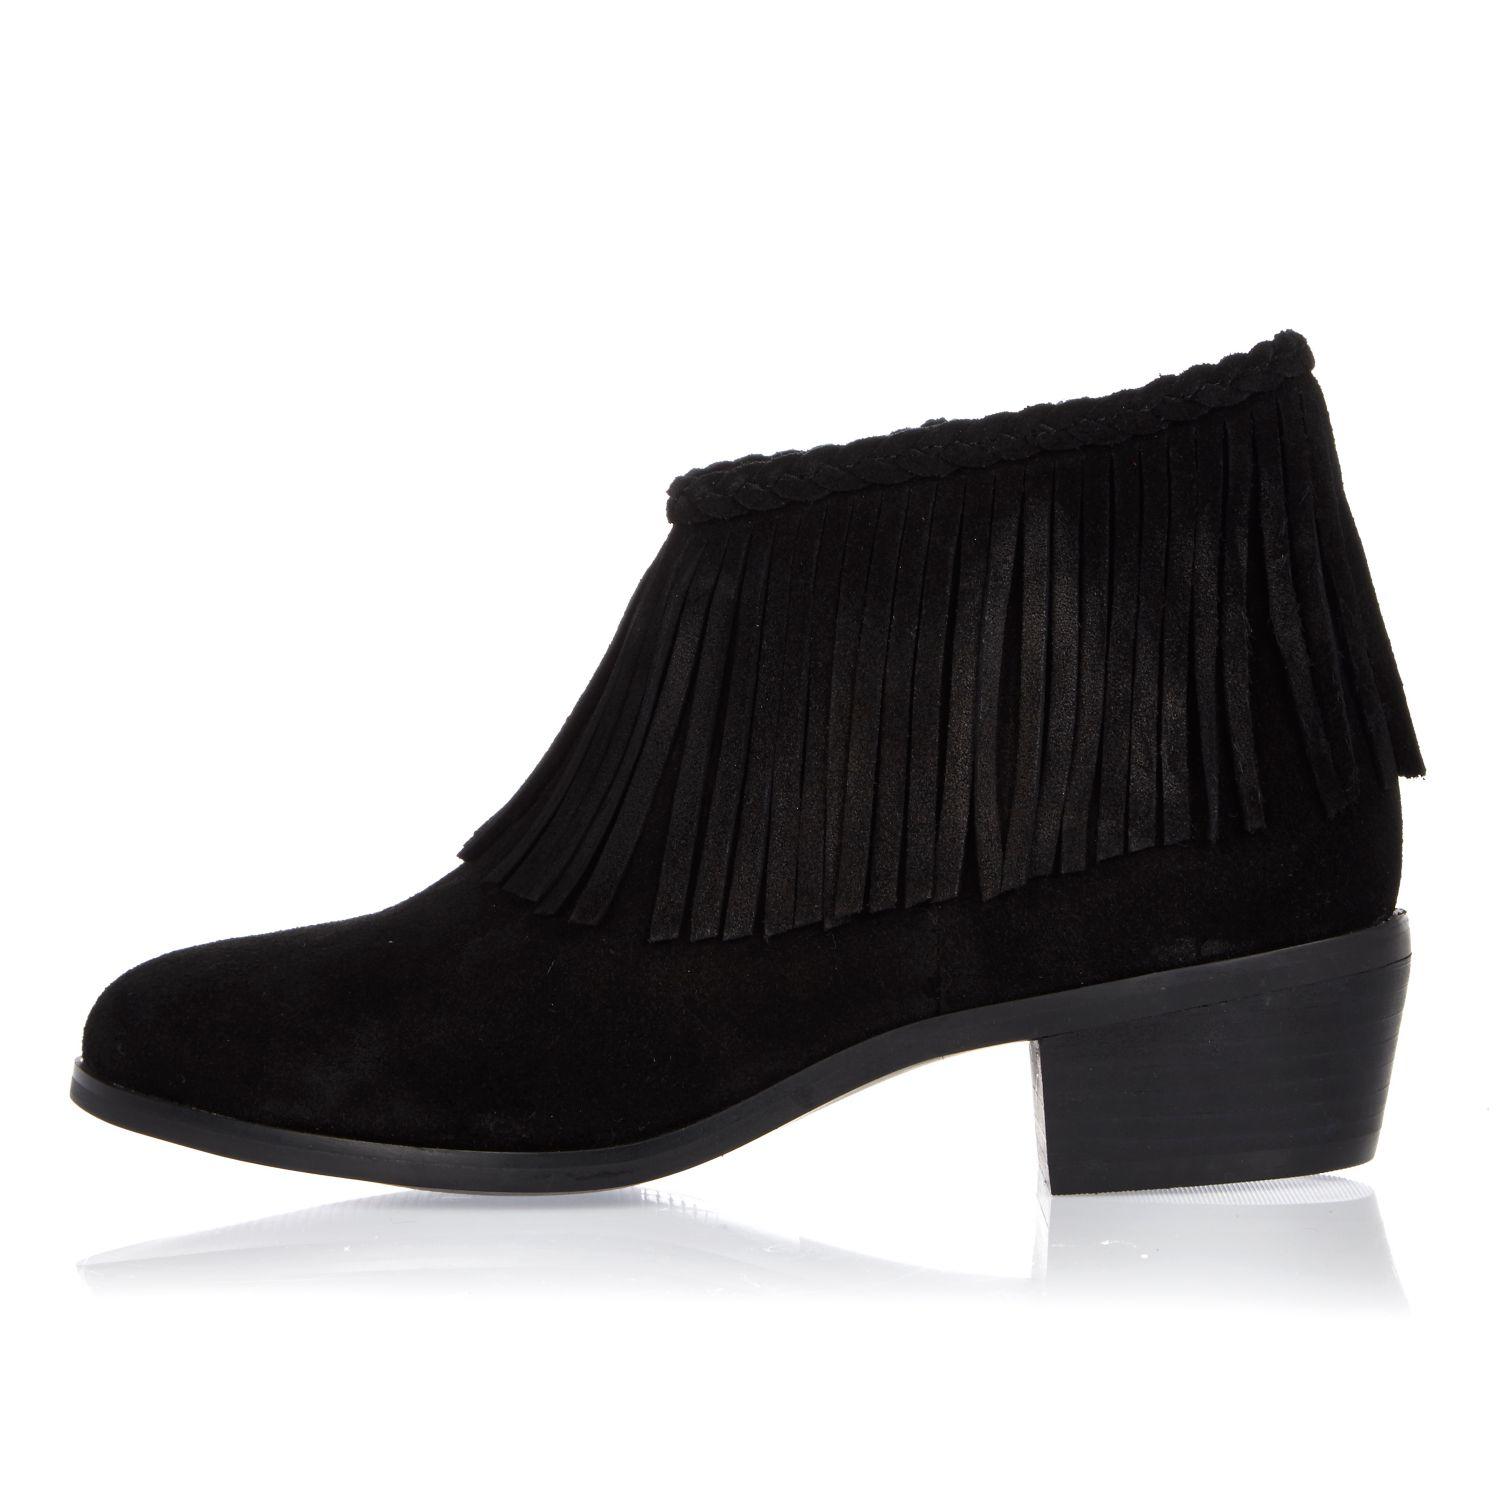 River island Black Fringed Ankle Boots in Black | Lyst